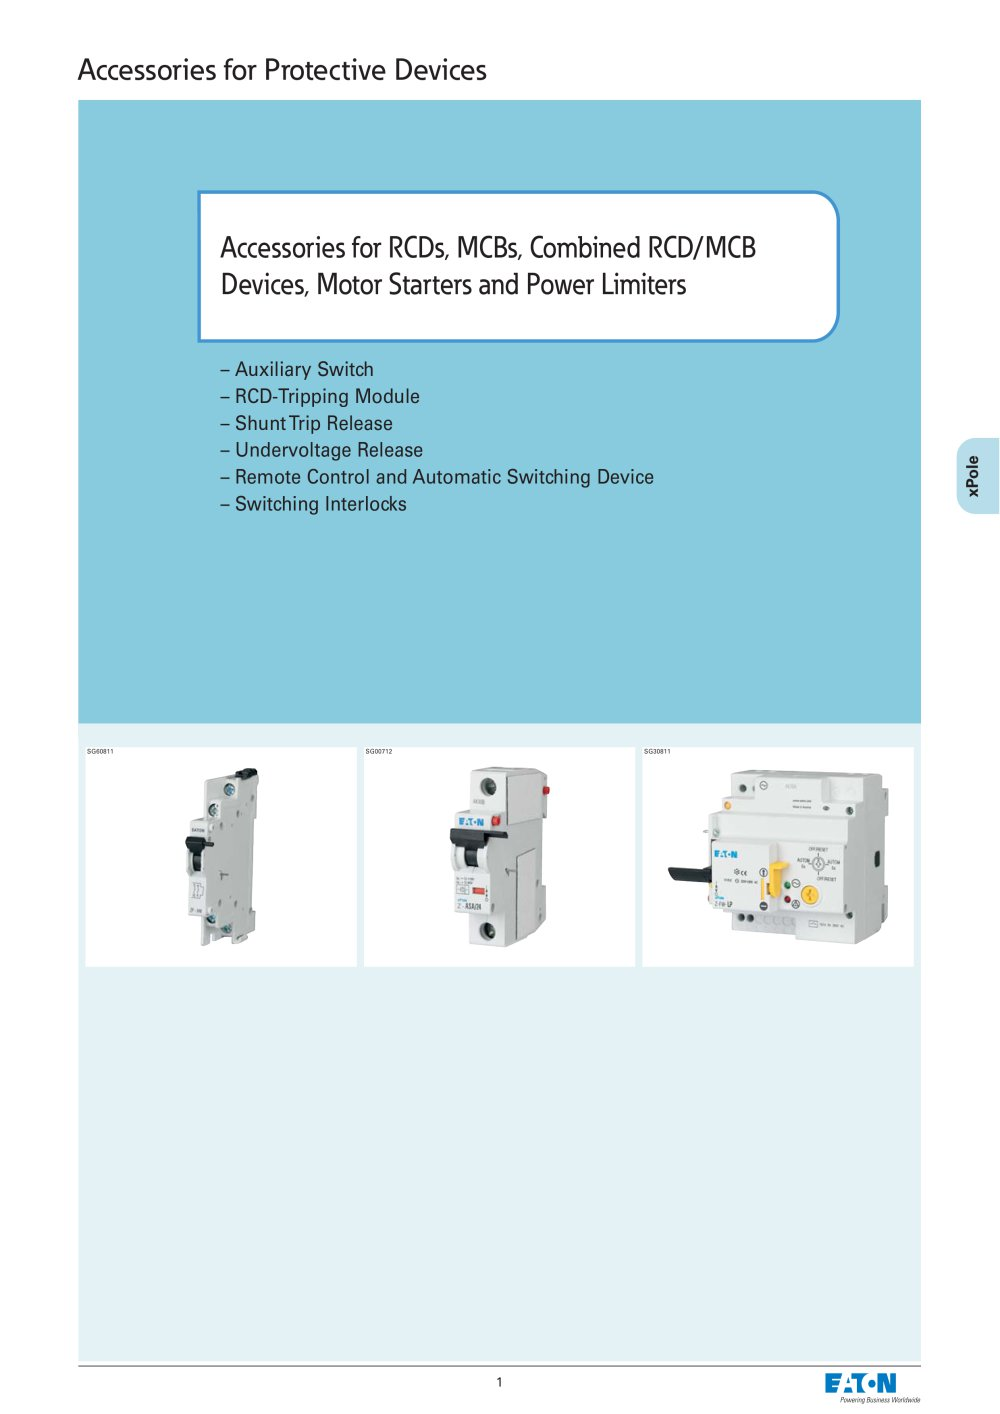 accessories for rcds mcbs combined rcd mcb devices motor accessories for rcds mcbs combined rcd mcb devices motor starters and power limiters 1 12 pages